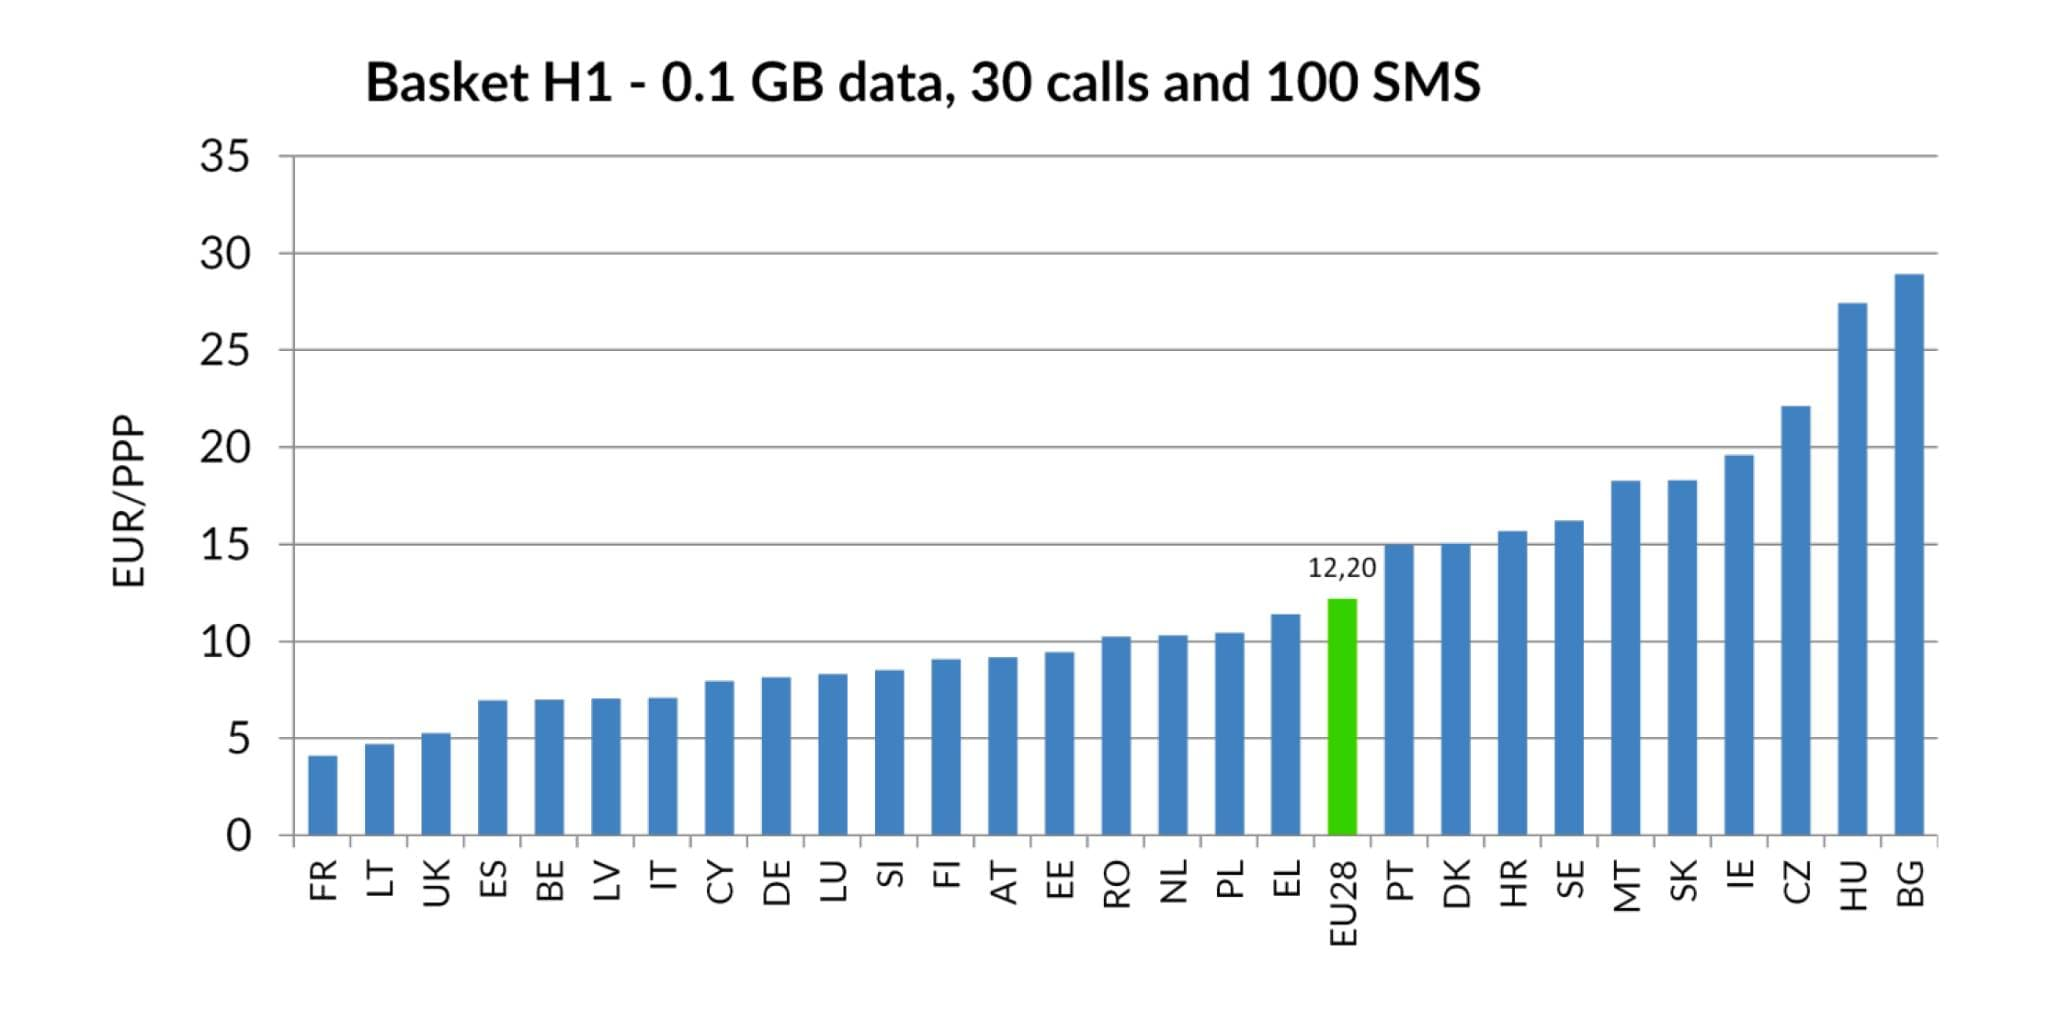 mobile-broadband-prices-in-europe-2018-20985